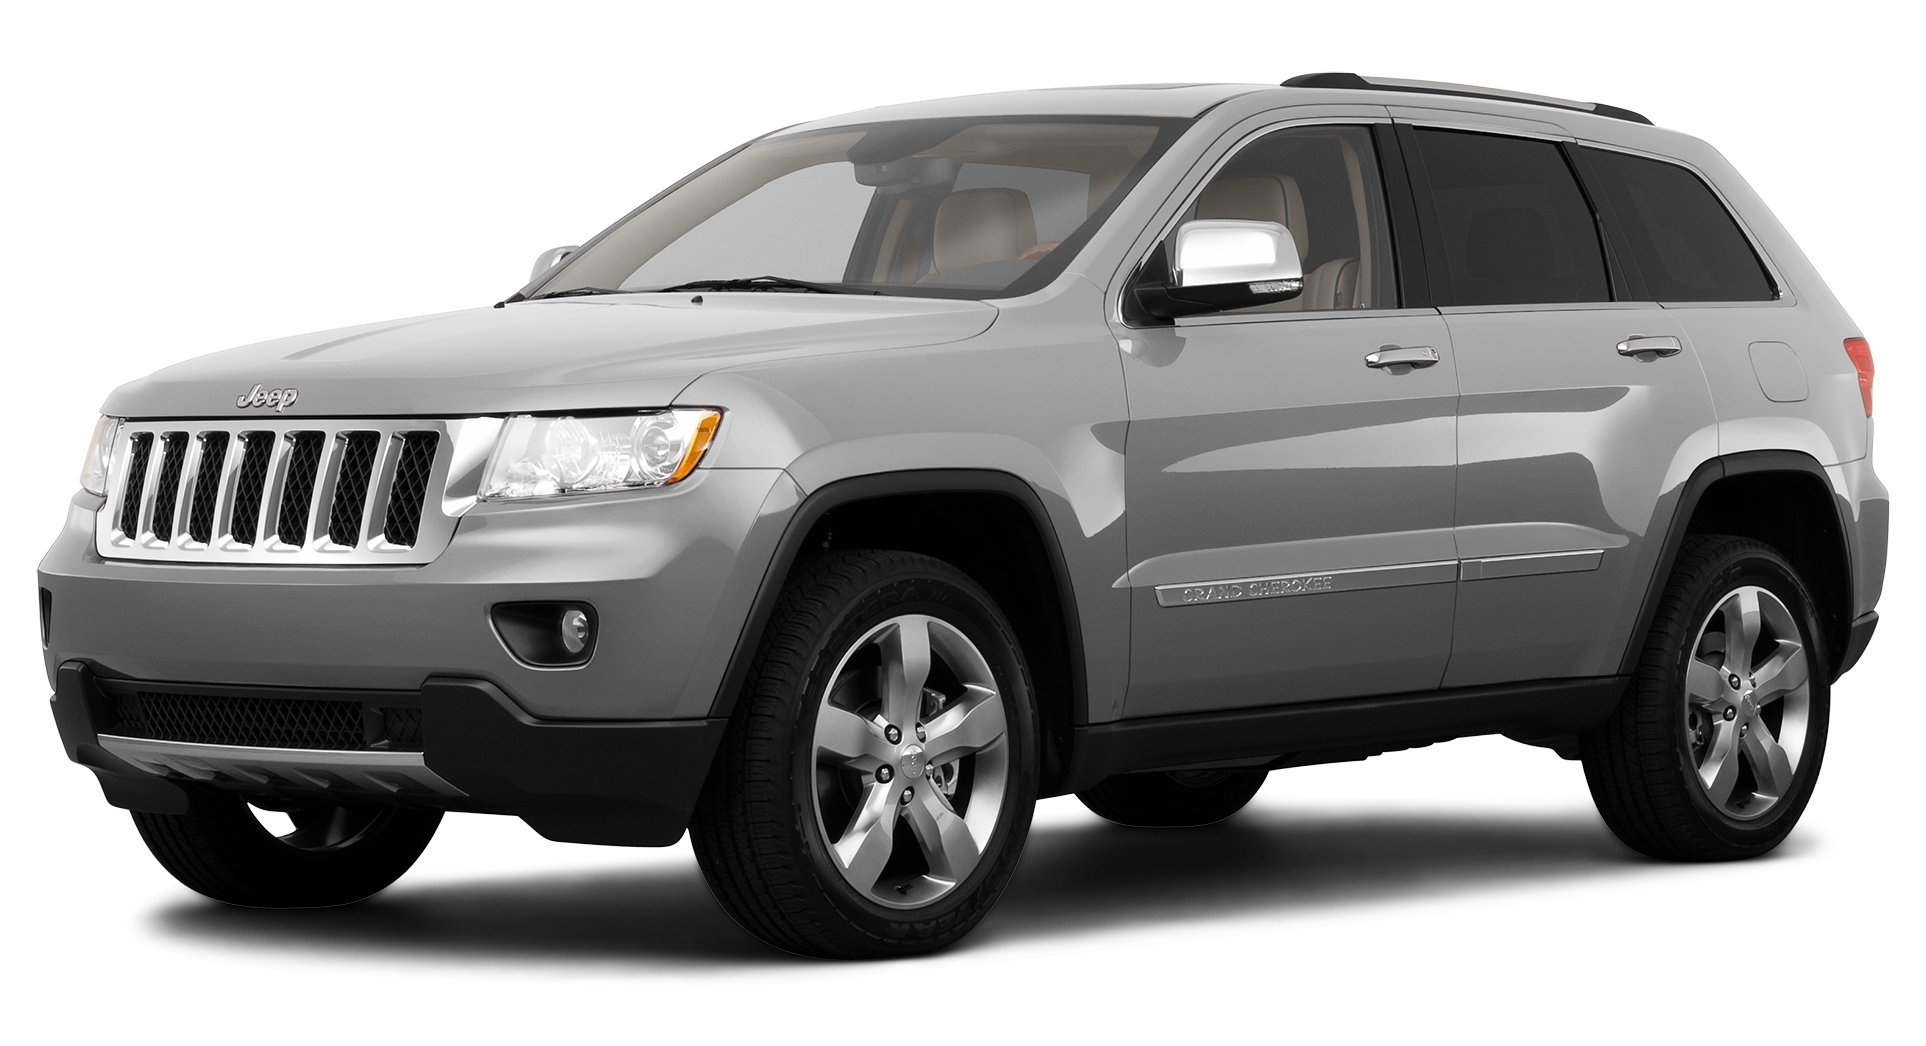 2011 jeep grand cherokee reviews images and. Black Bedroom Furniture Sets. Home Design Ideas